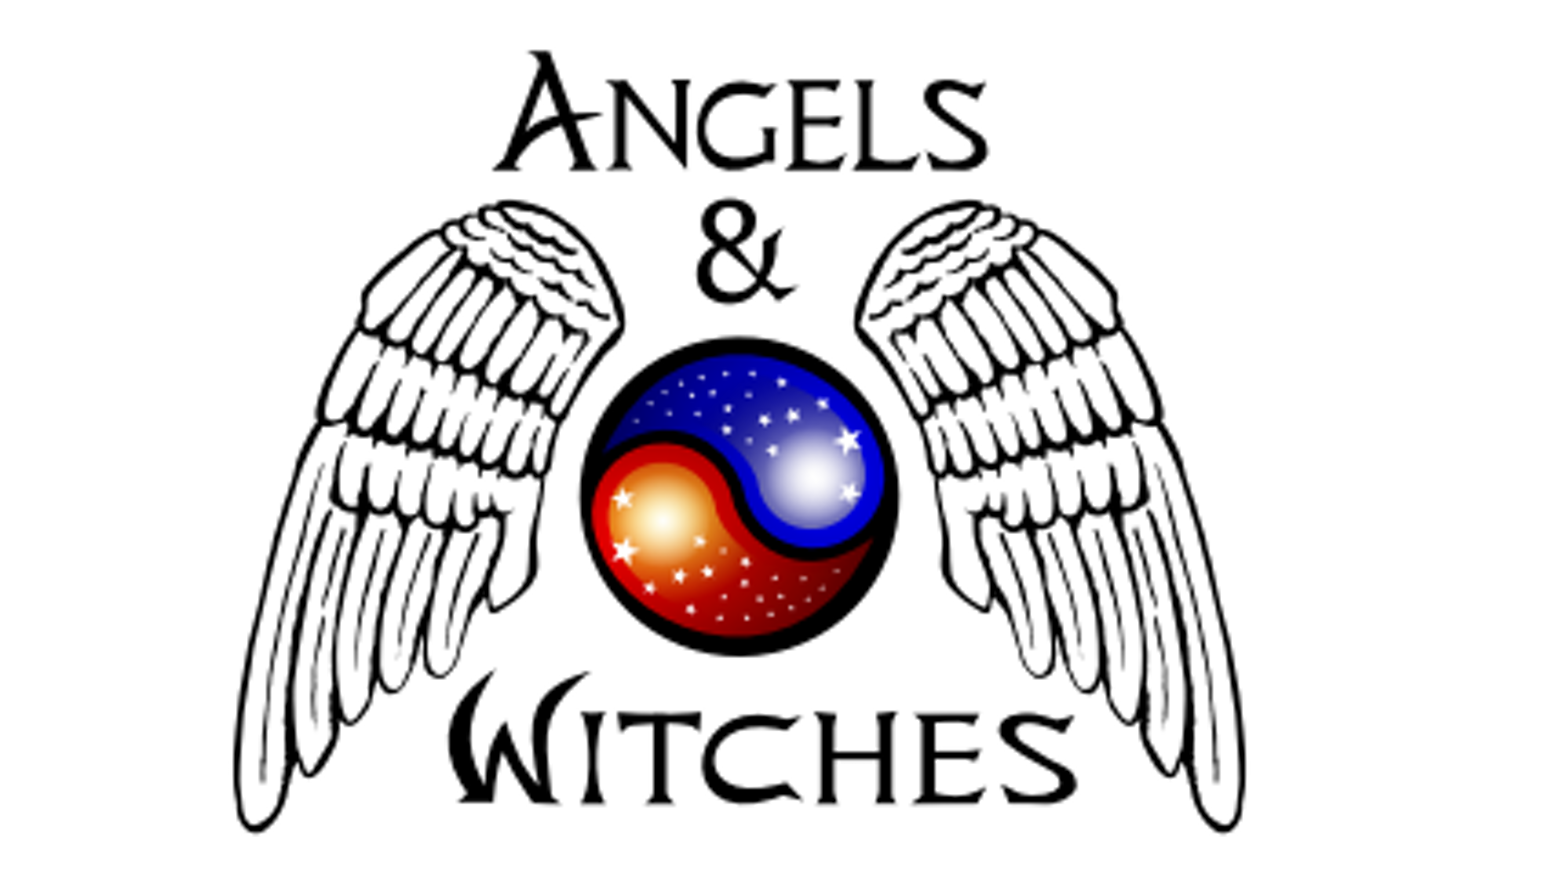 Angels & Witches is looking for a home & many of you have pledged to bring it one step closer to achieving this dream!  Follow us on Facebook and Twitter for the latest on how far we are from project completion